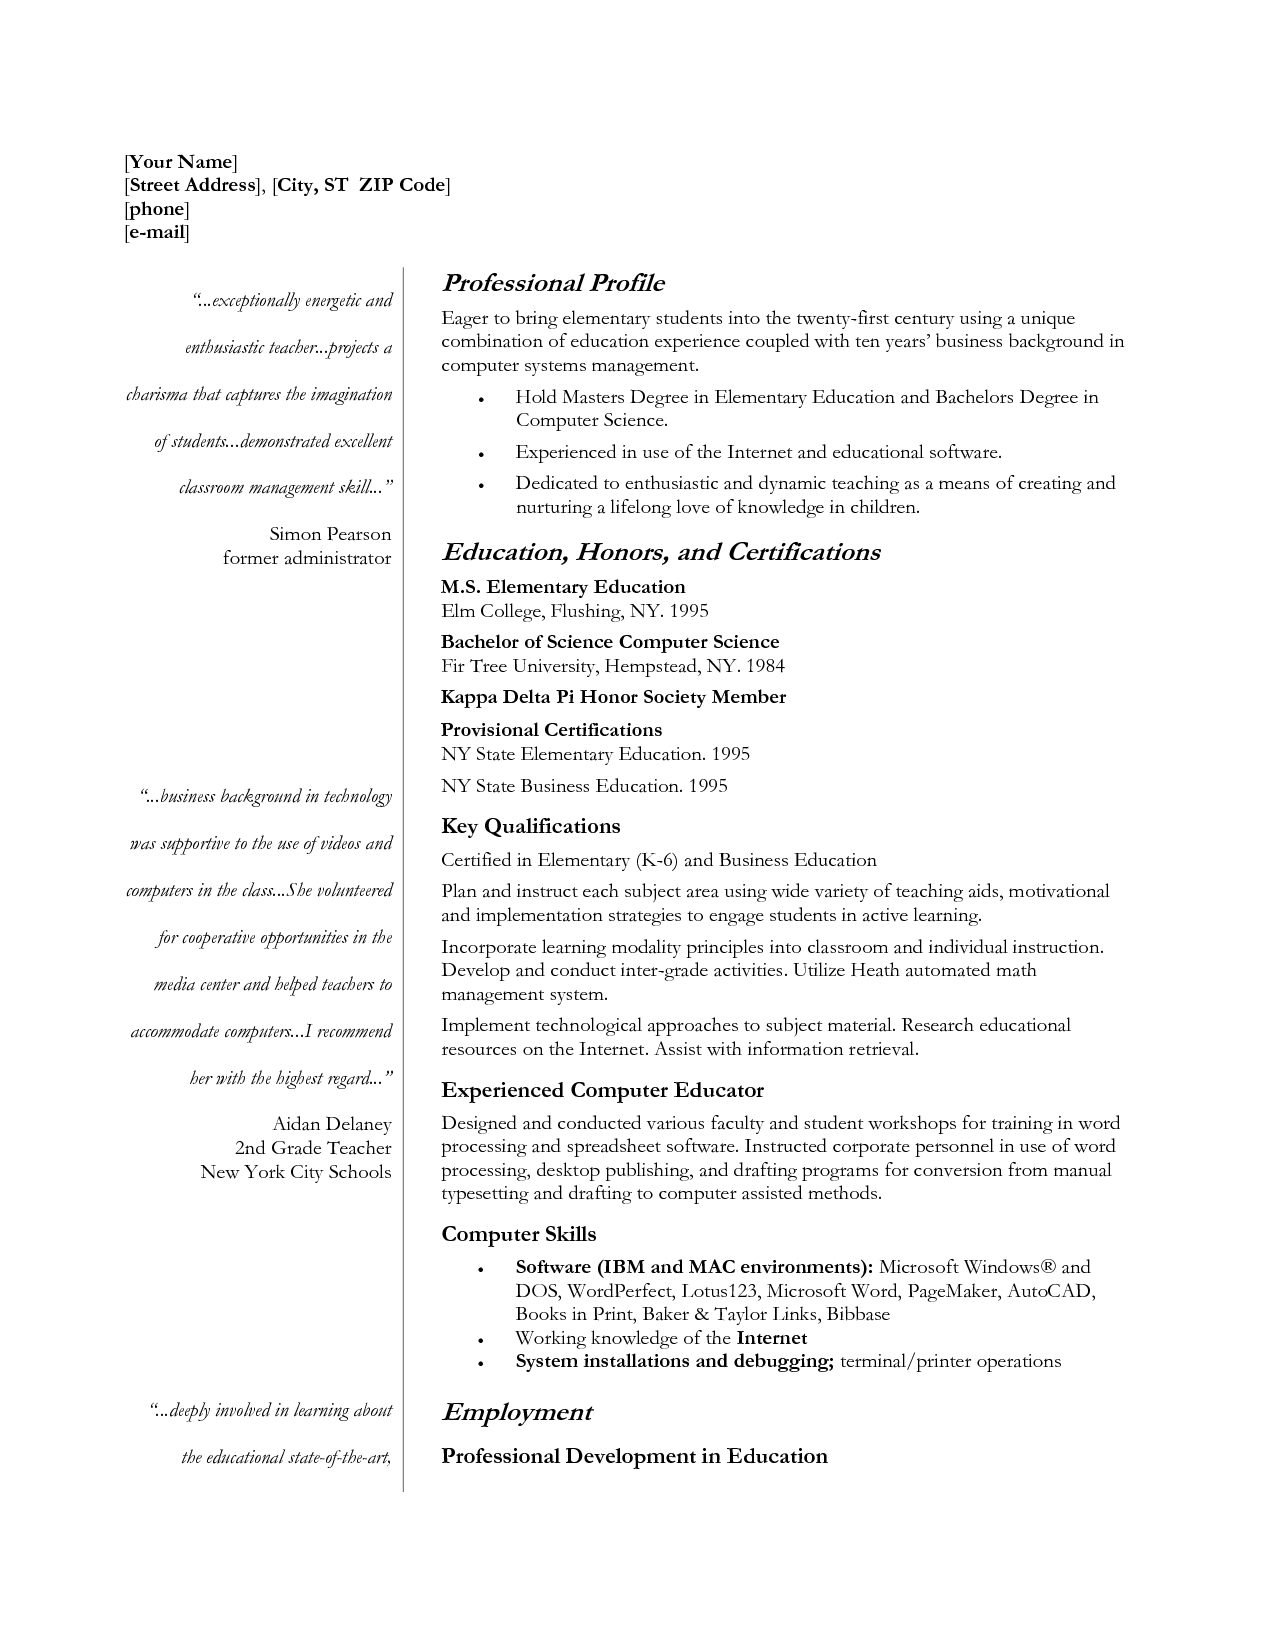 resume templates with quotes quotesgram